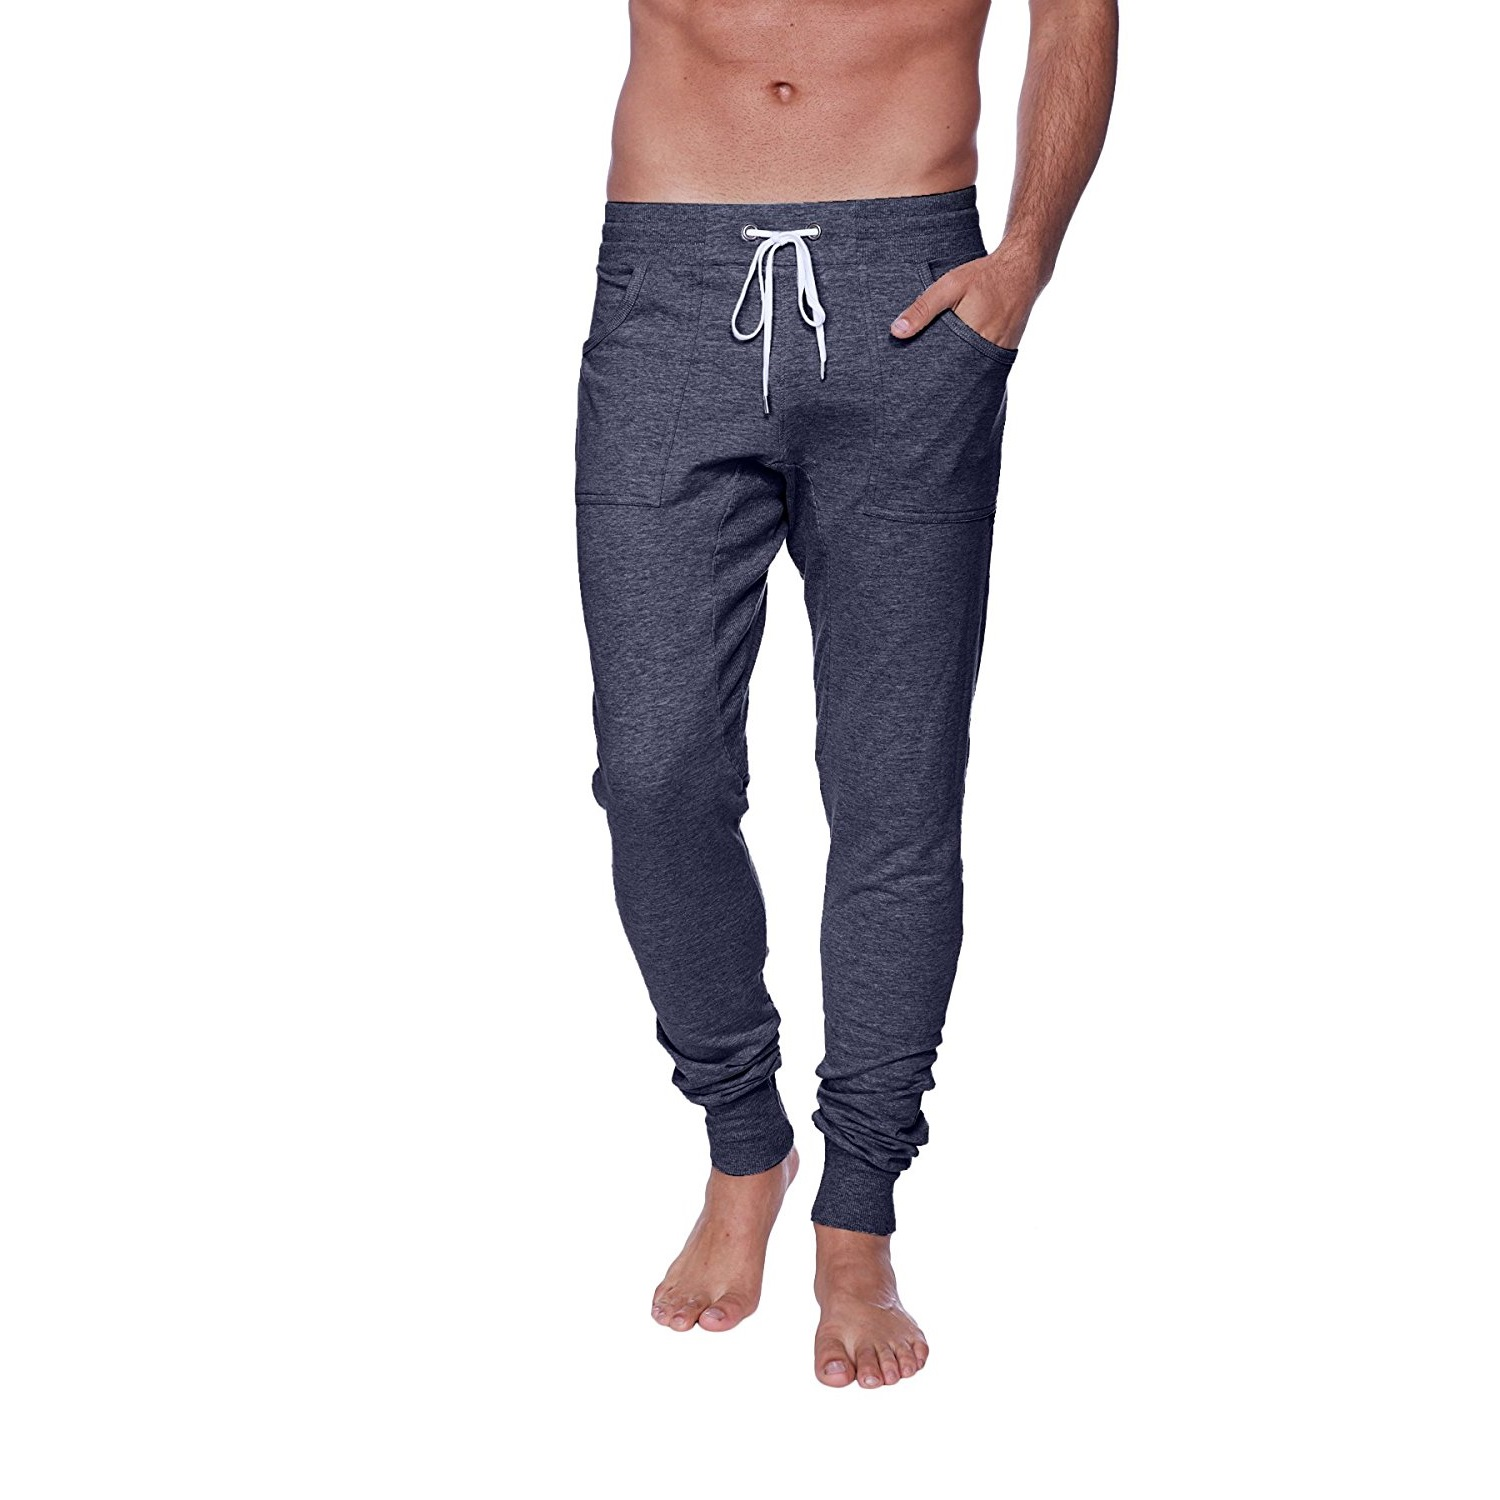 4-rth mens long cuffed jogger yoga pants charcoal